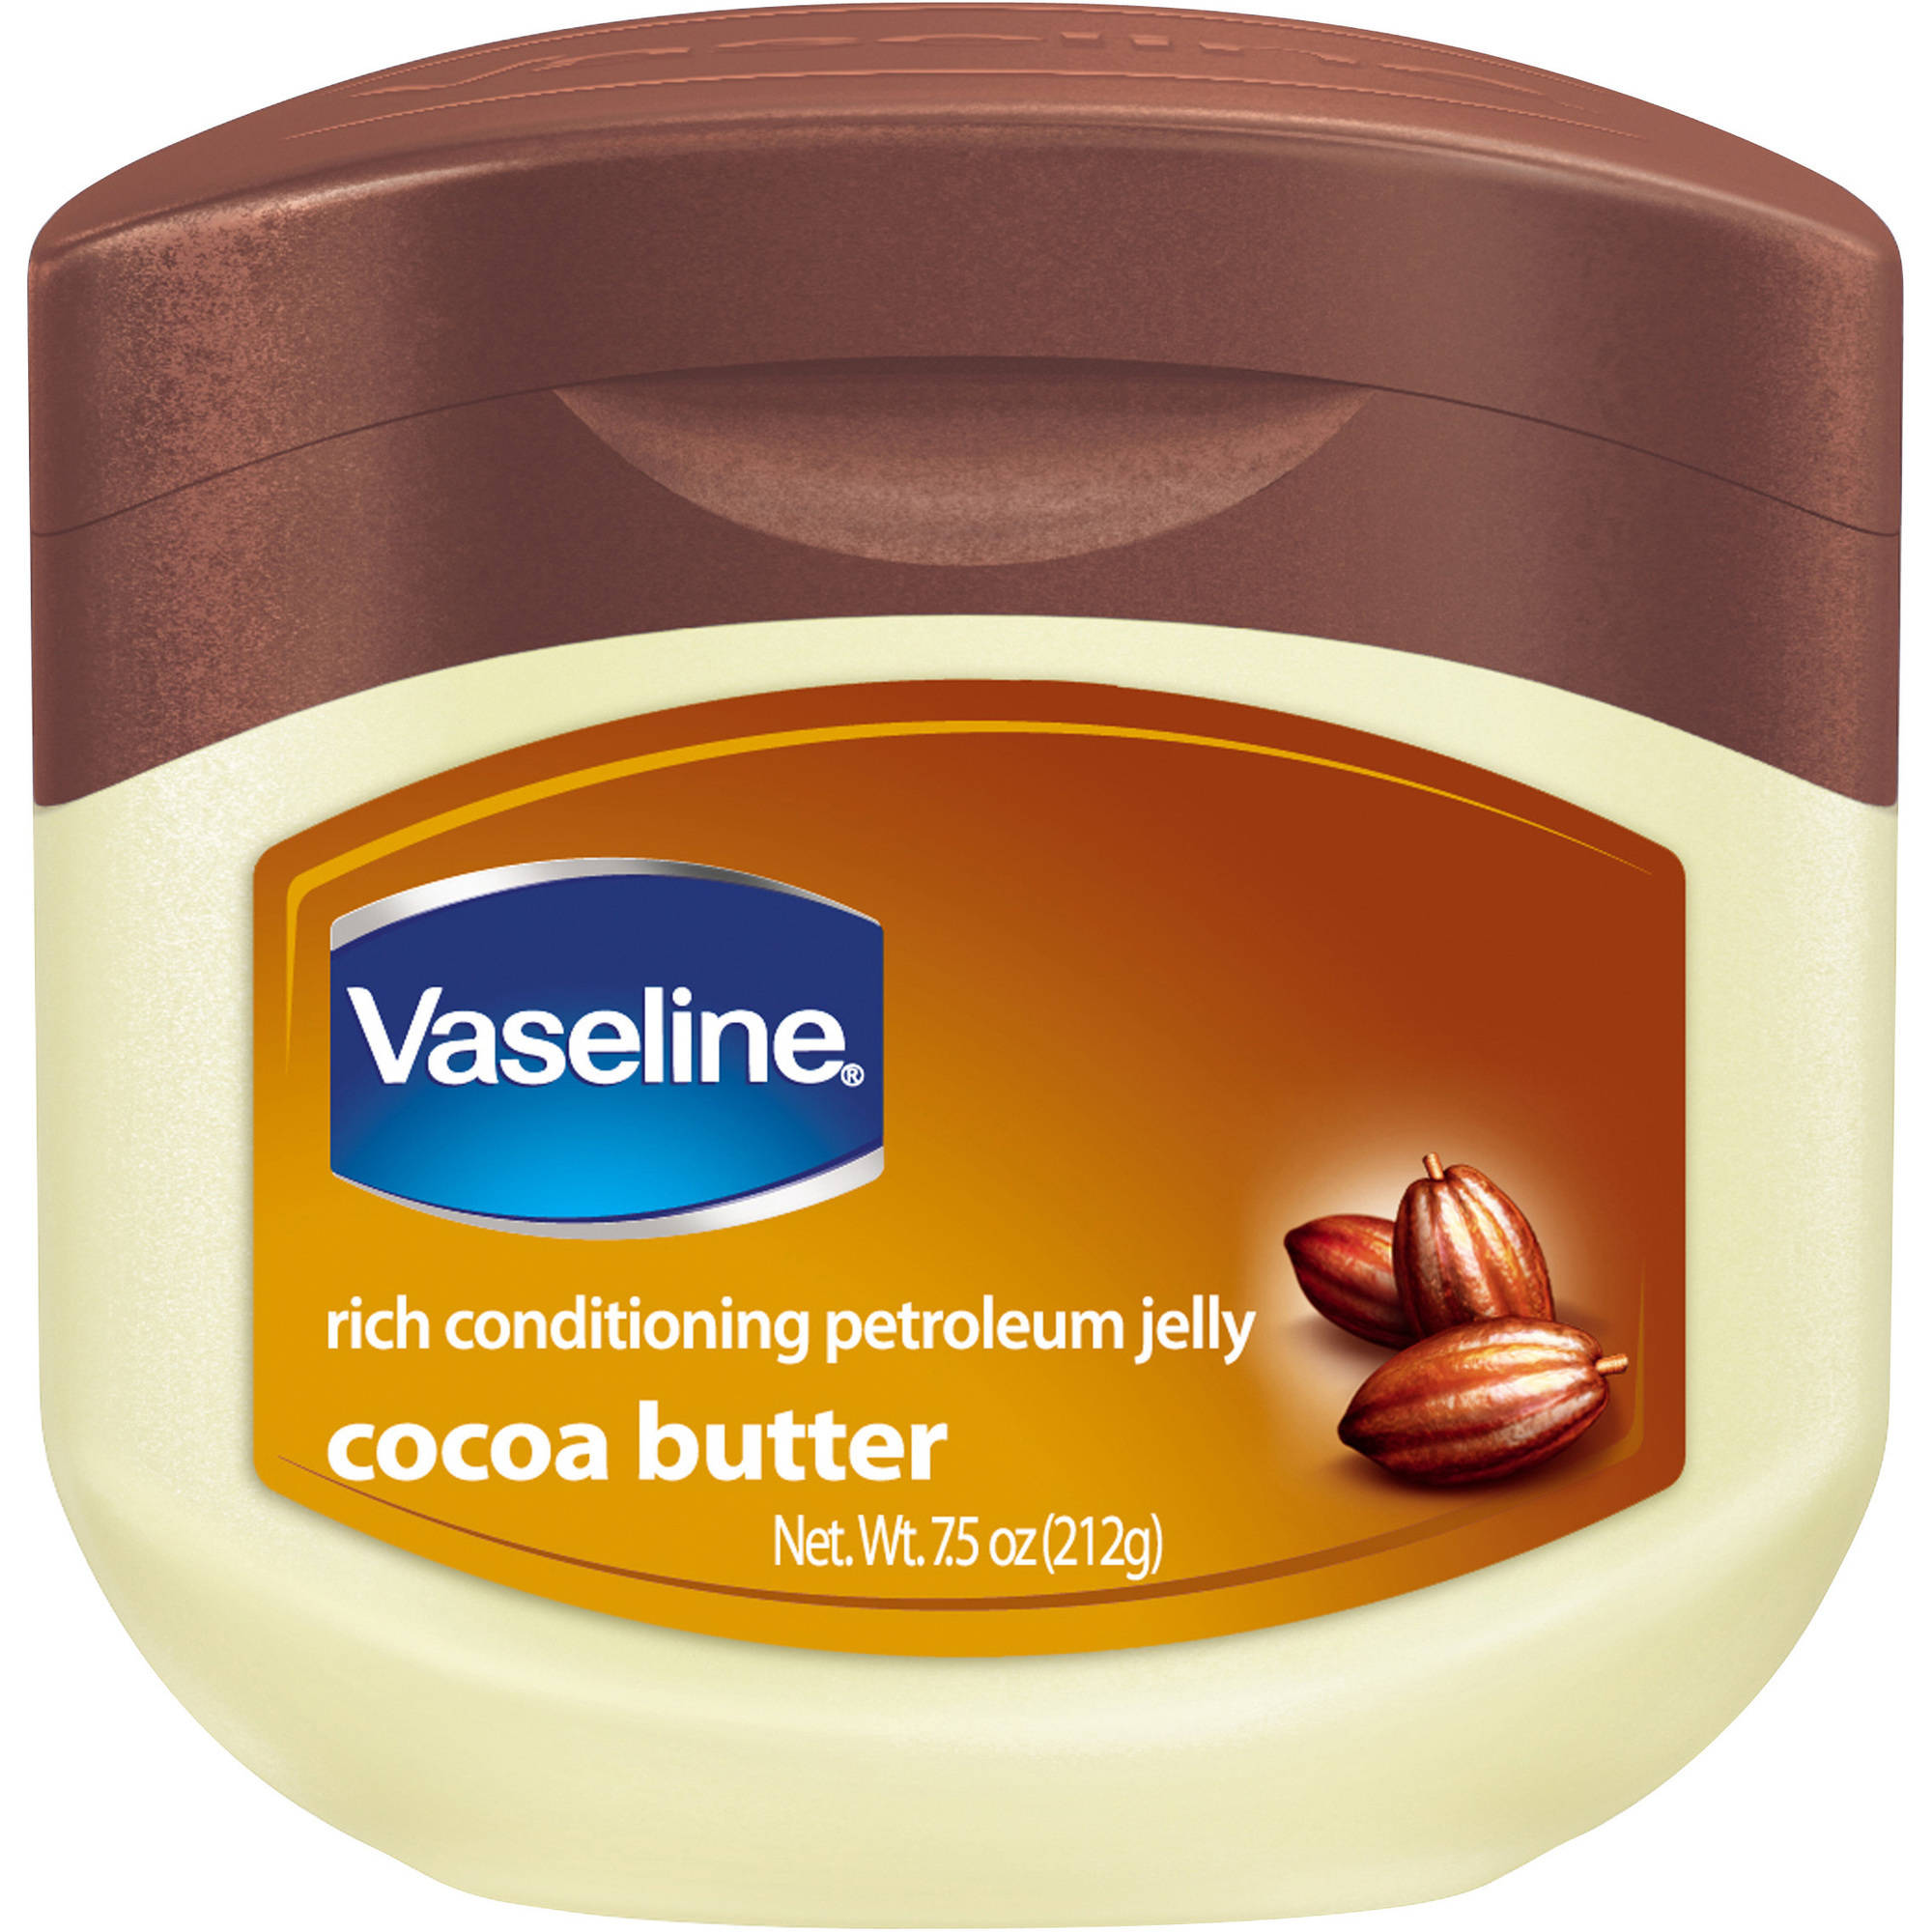 Vaseline Cocoa Butter Jelly, 7.5 oz